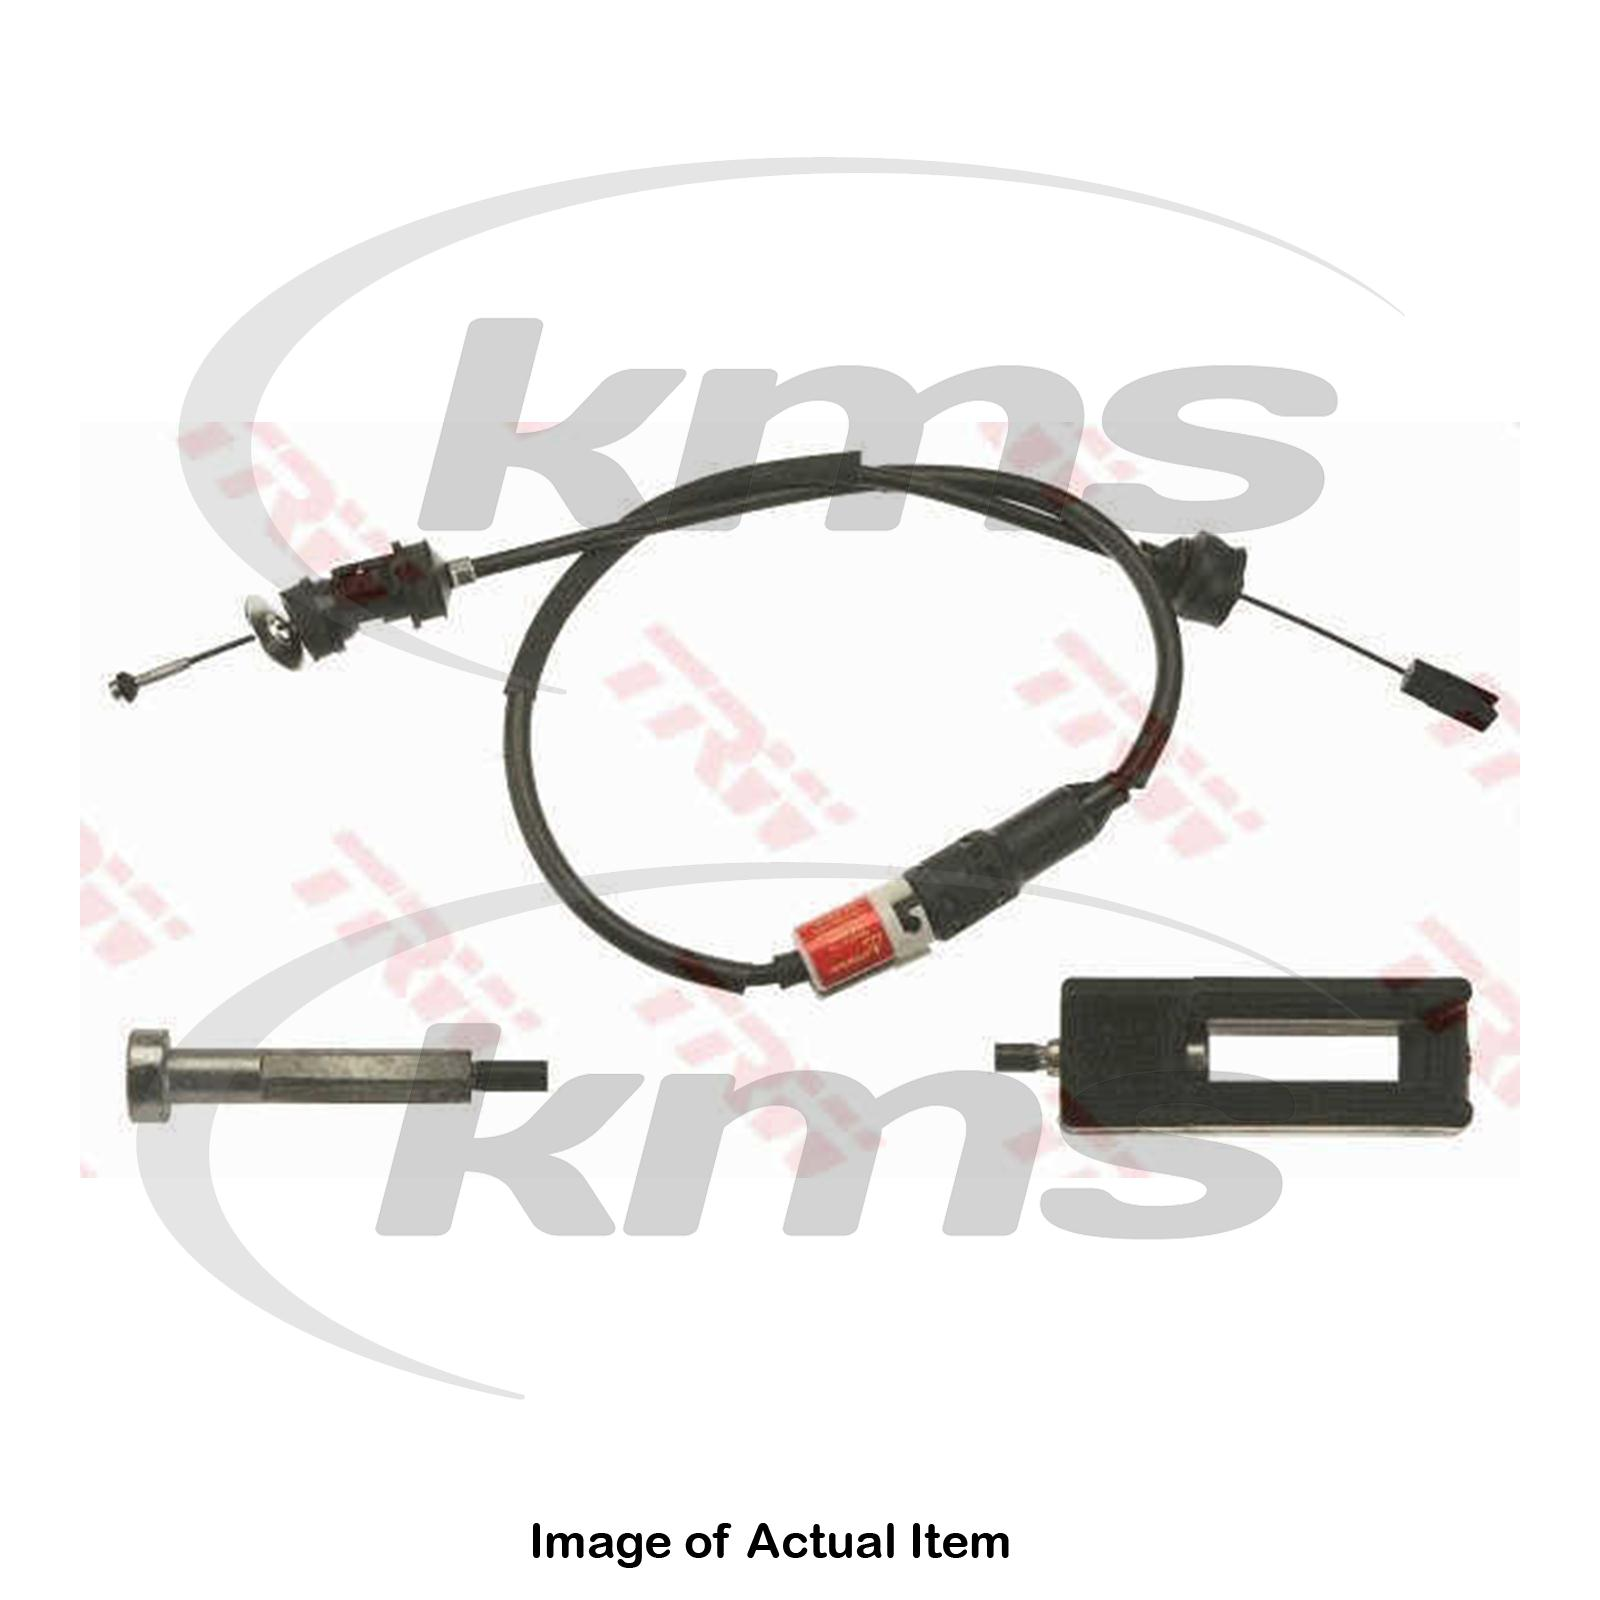 Motaquip Clutch Cable VVC292 BRAND NEW GENUINE 5 YEAR WARRANTY